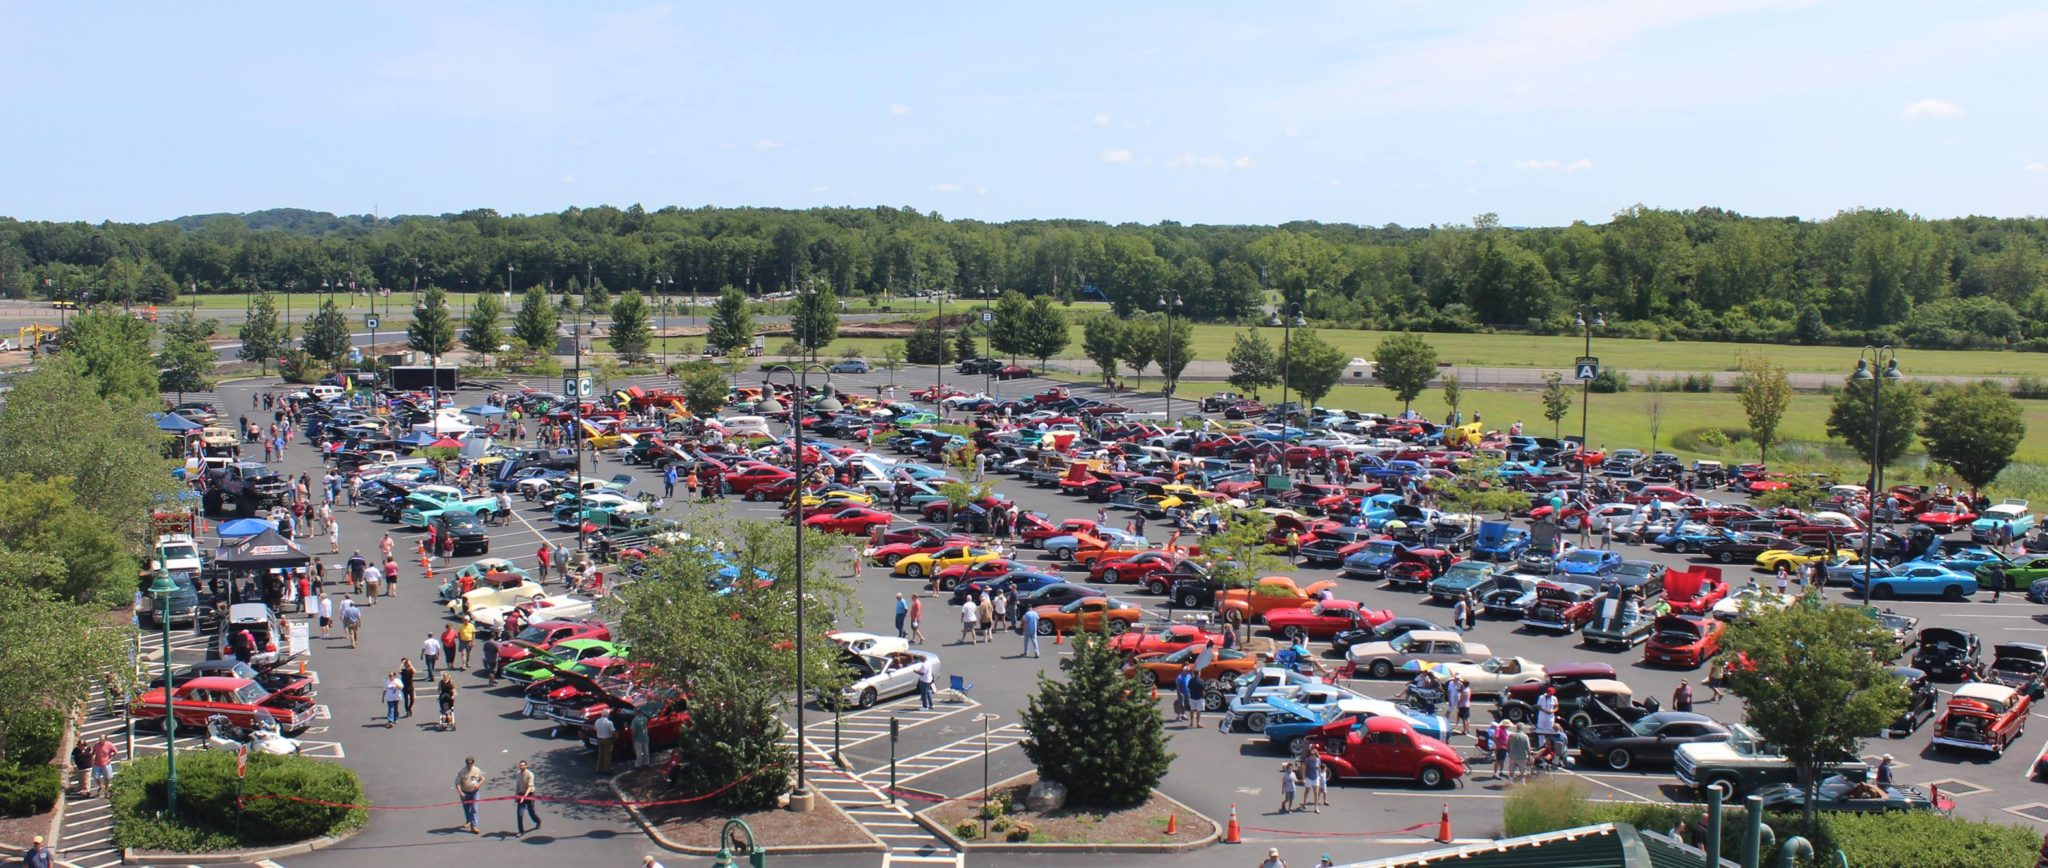 CT E Hartford Cabela Classic Car Show to benefit the Hole in